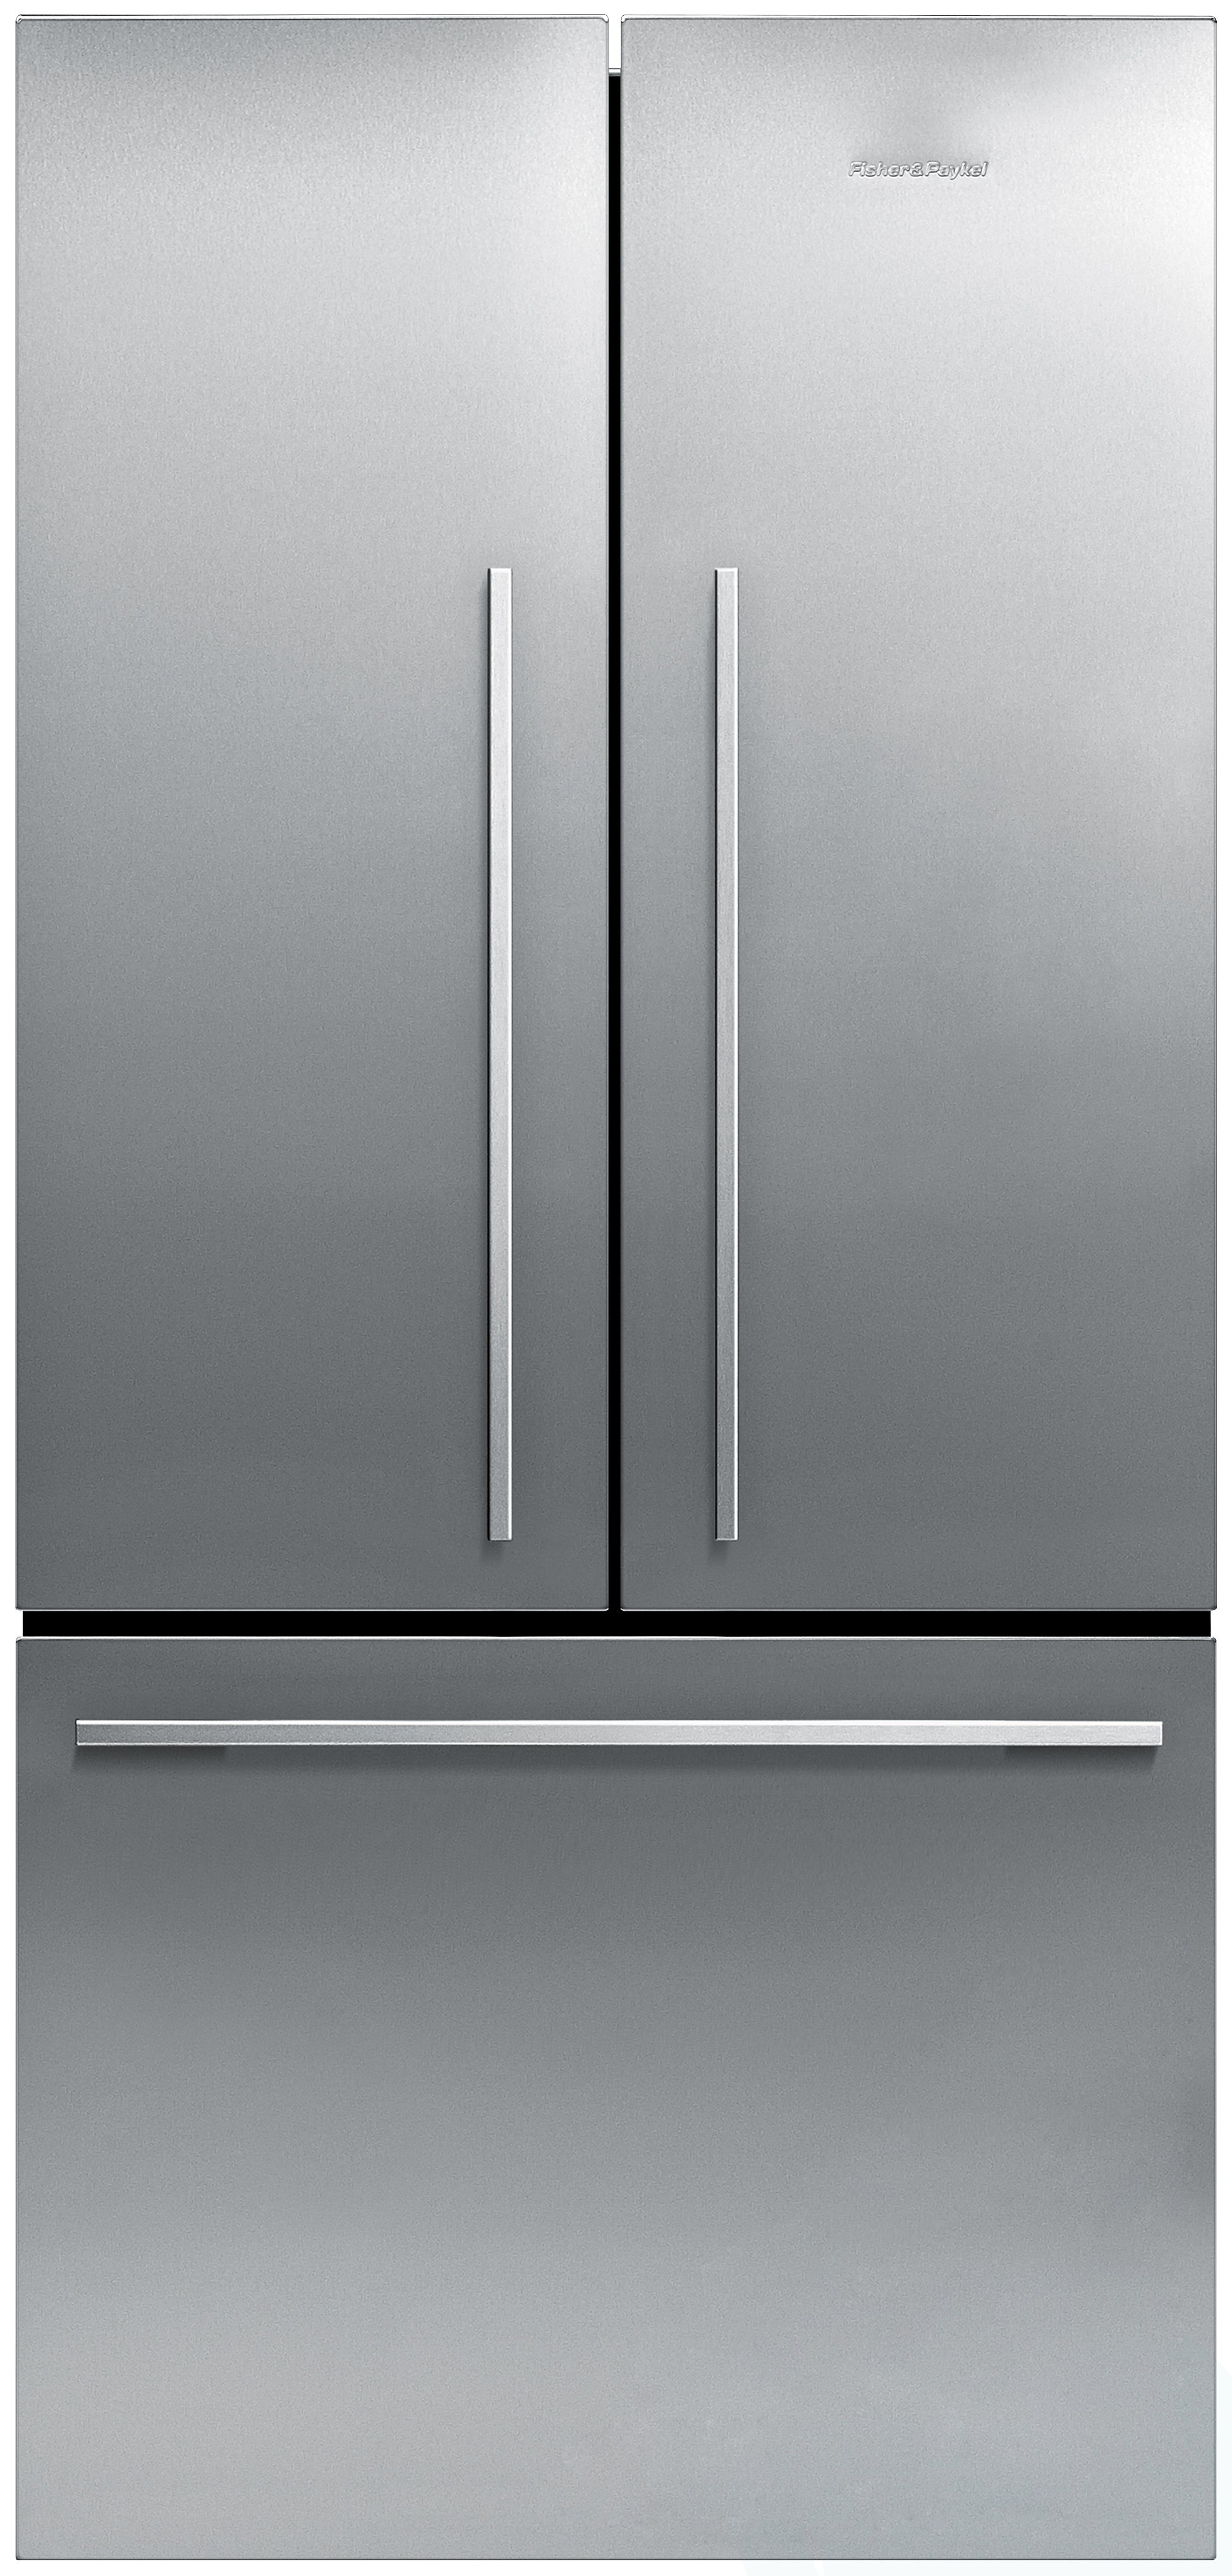 Fisher and paykel french door fridge reviews - Fisher And Paykel French Door Fridge Reviews 41